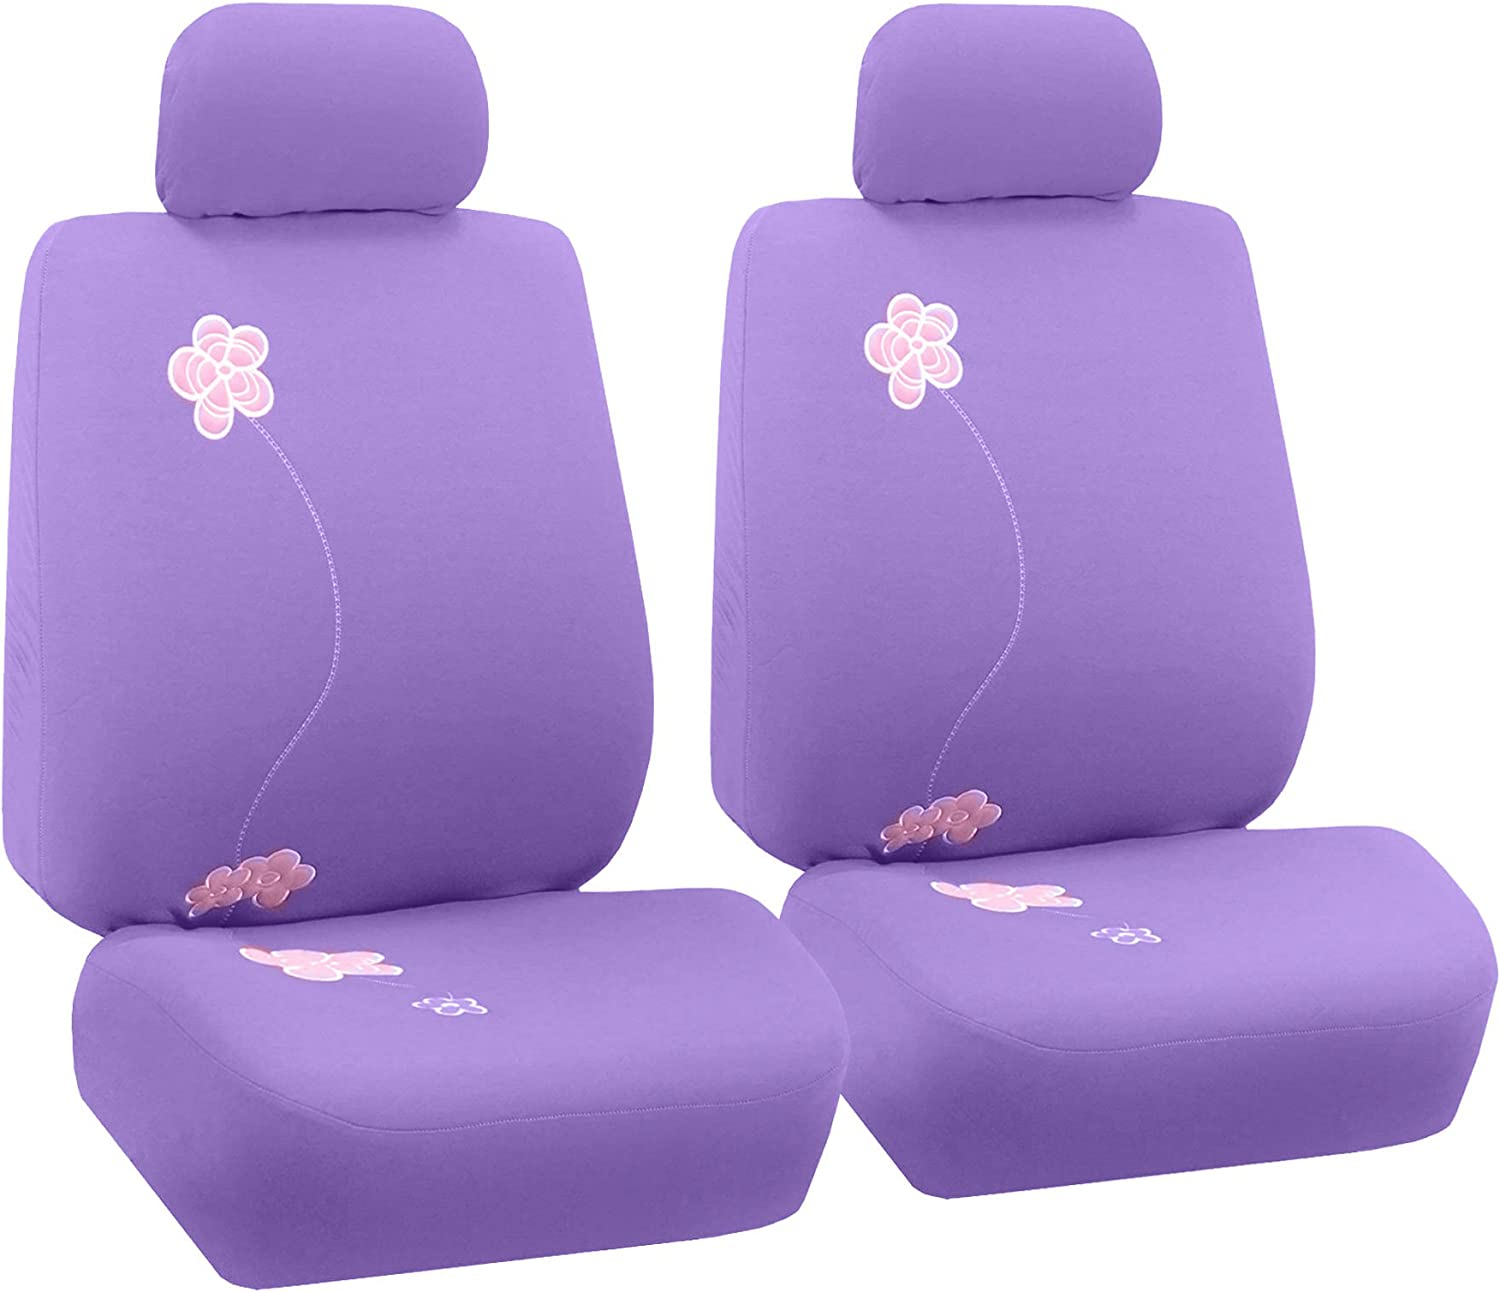 FH Group FB053PURPLE102 Seat Cover (Flower Embroidery Airbag Compatible (Set of 2) Purple)